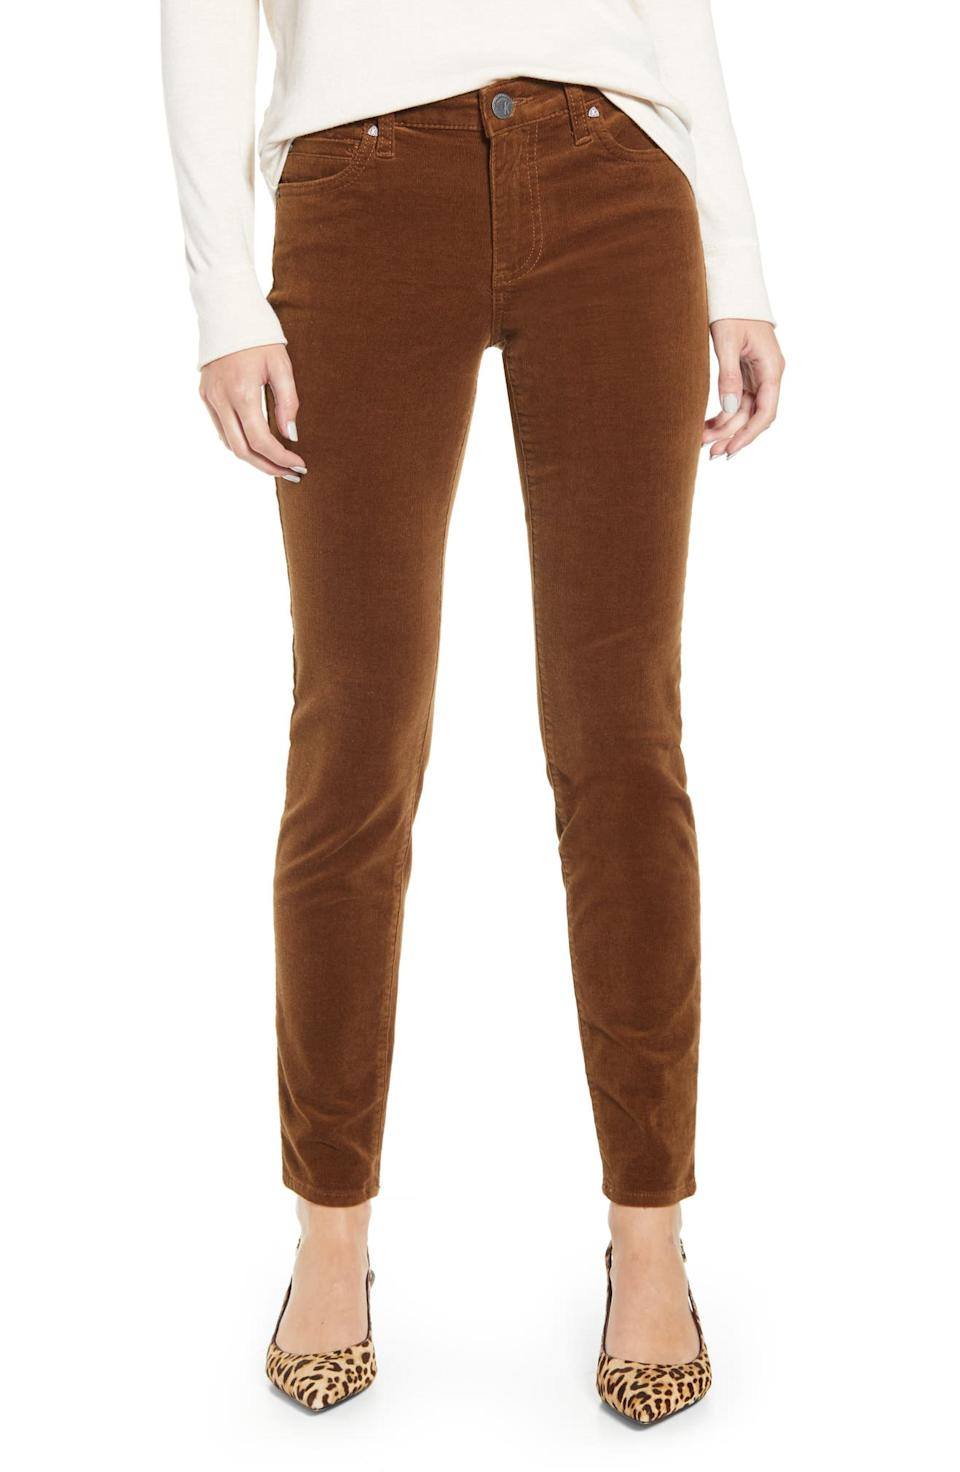 Kut From the Kloth Diana Stretch Corduroy Skinny Pants. Image via Nordstrom.